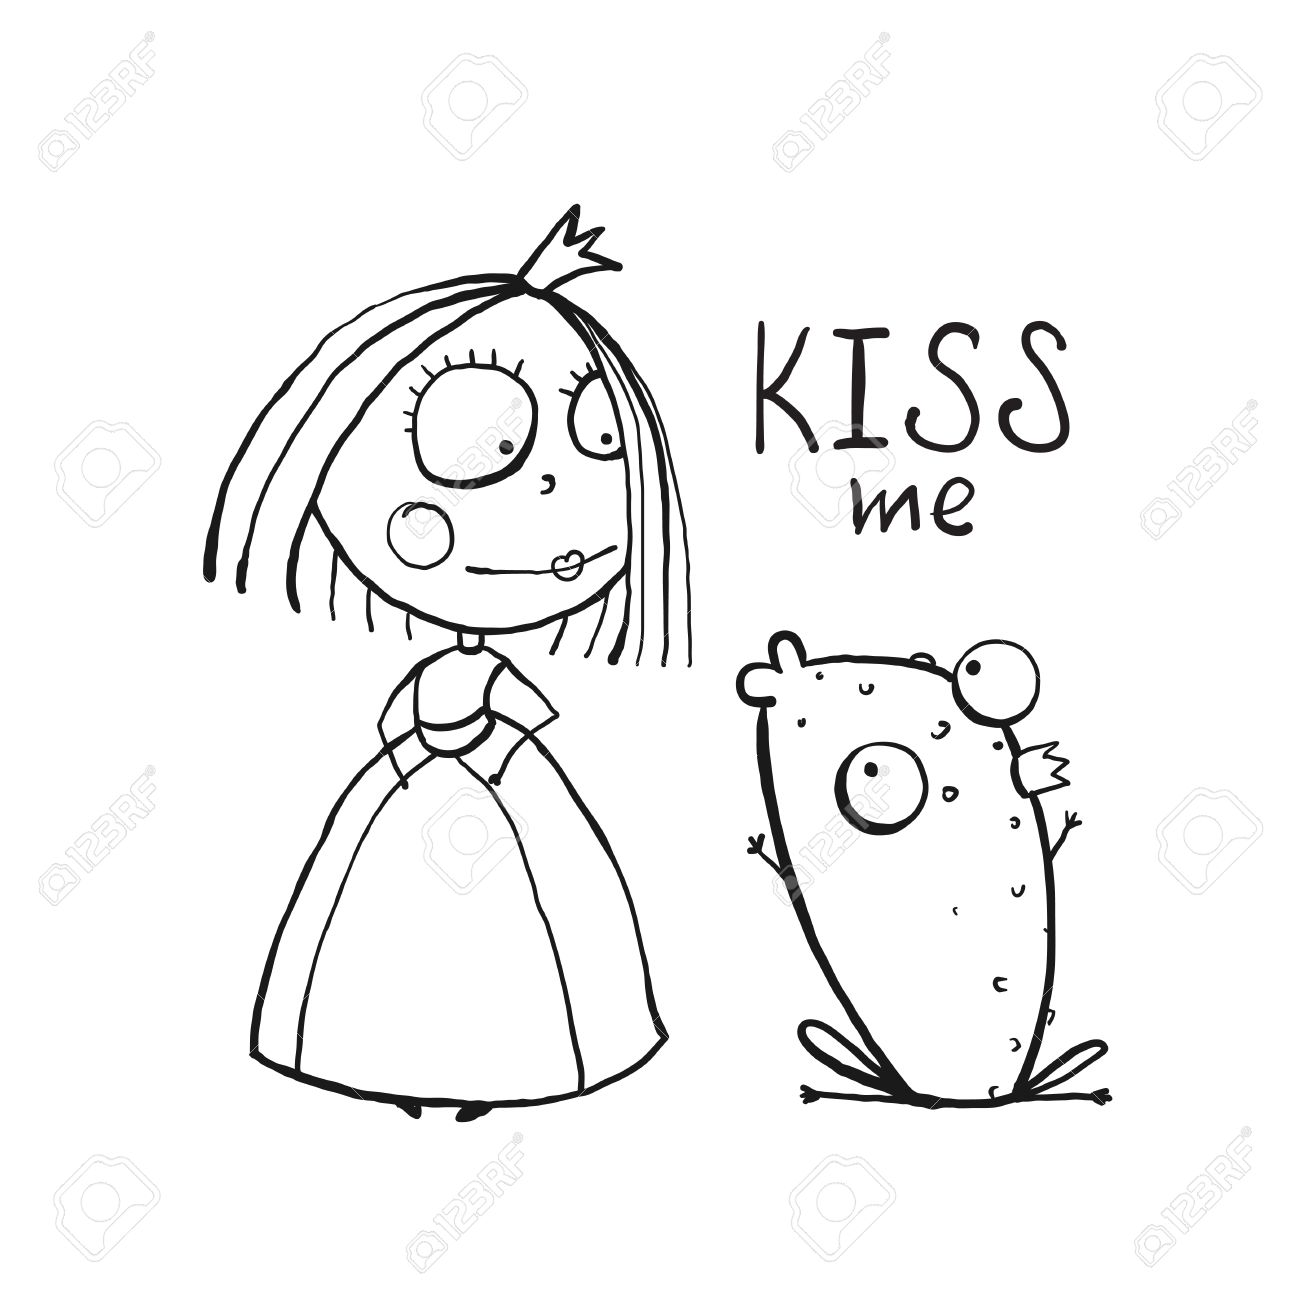 Coloring pages kiss - Baby Princess And Frog Asking For Kiss Coloring Page Kids Love Story Cute And Fun